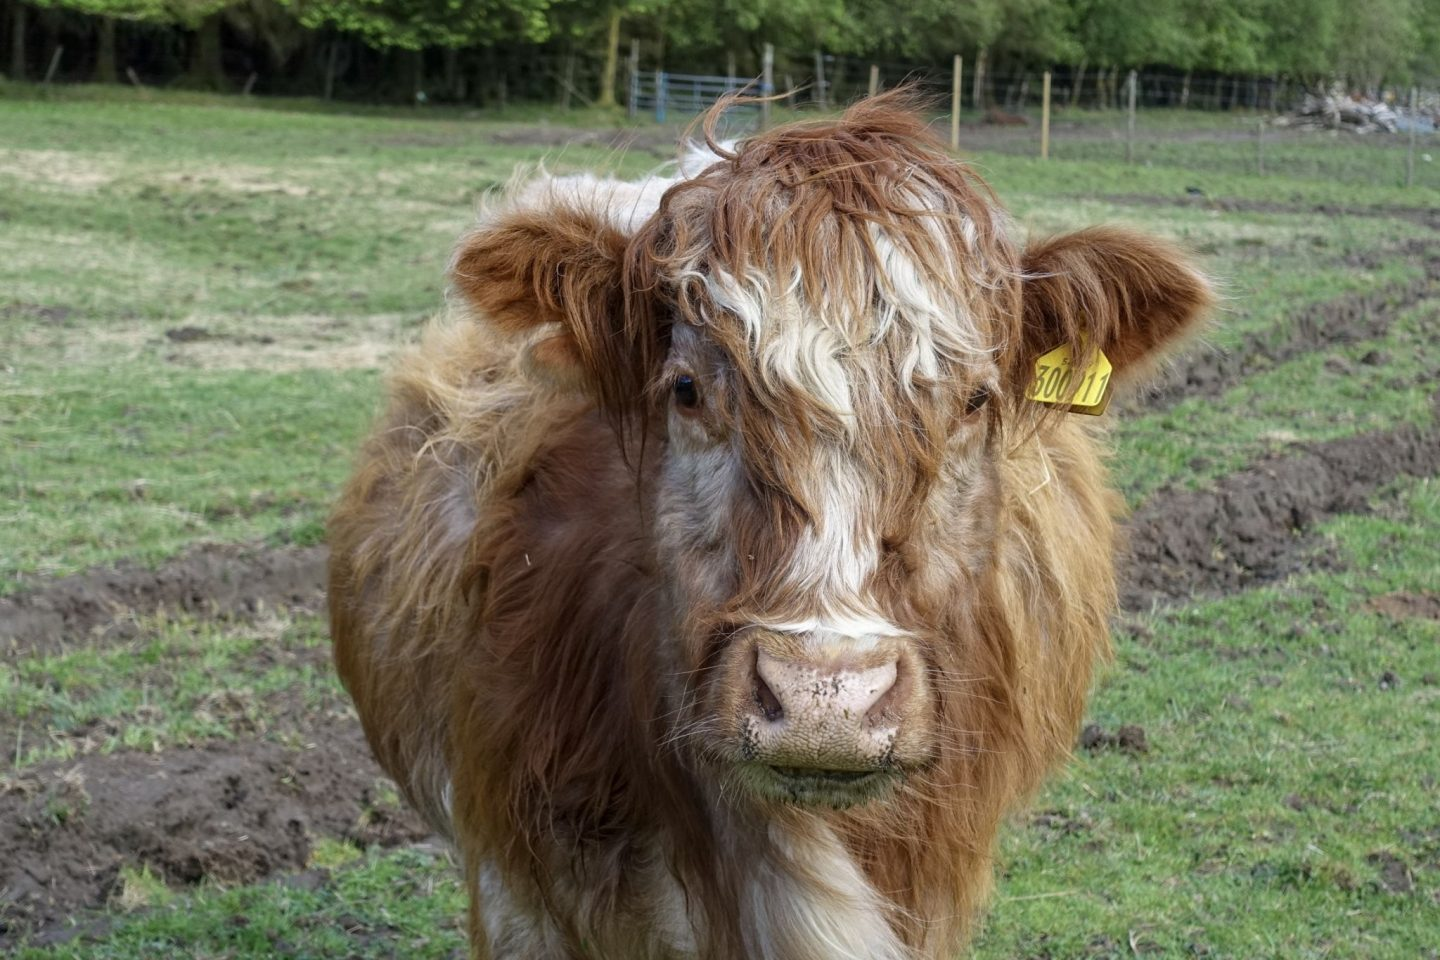 A close up of a Scottish Highland Cow, looking face on into the camera